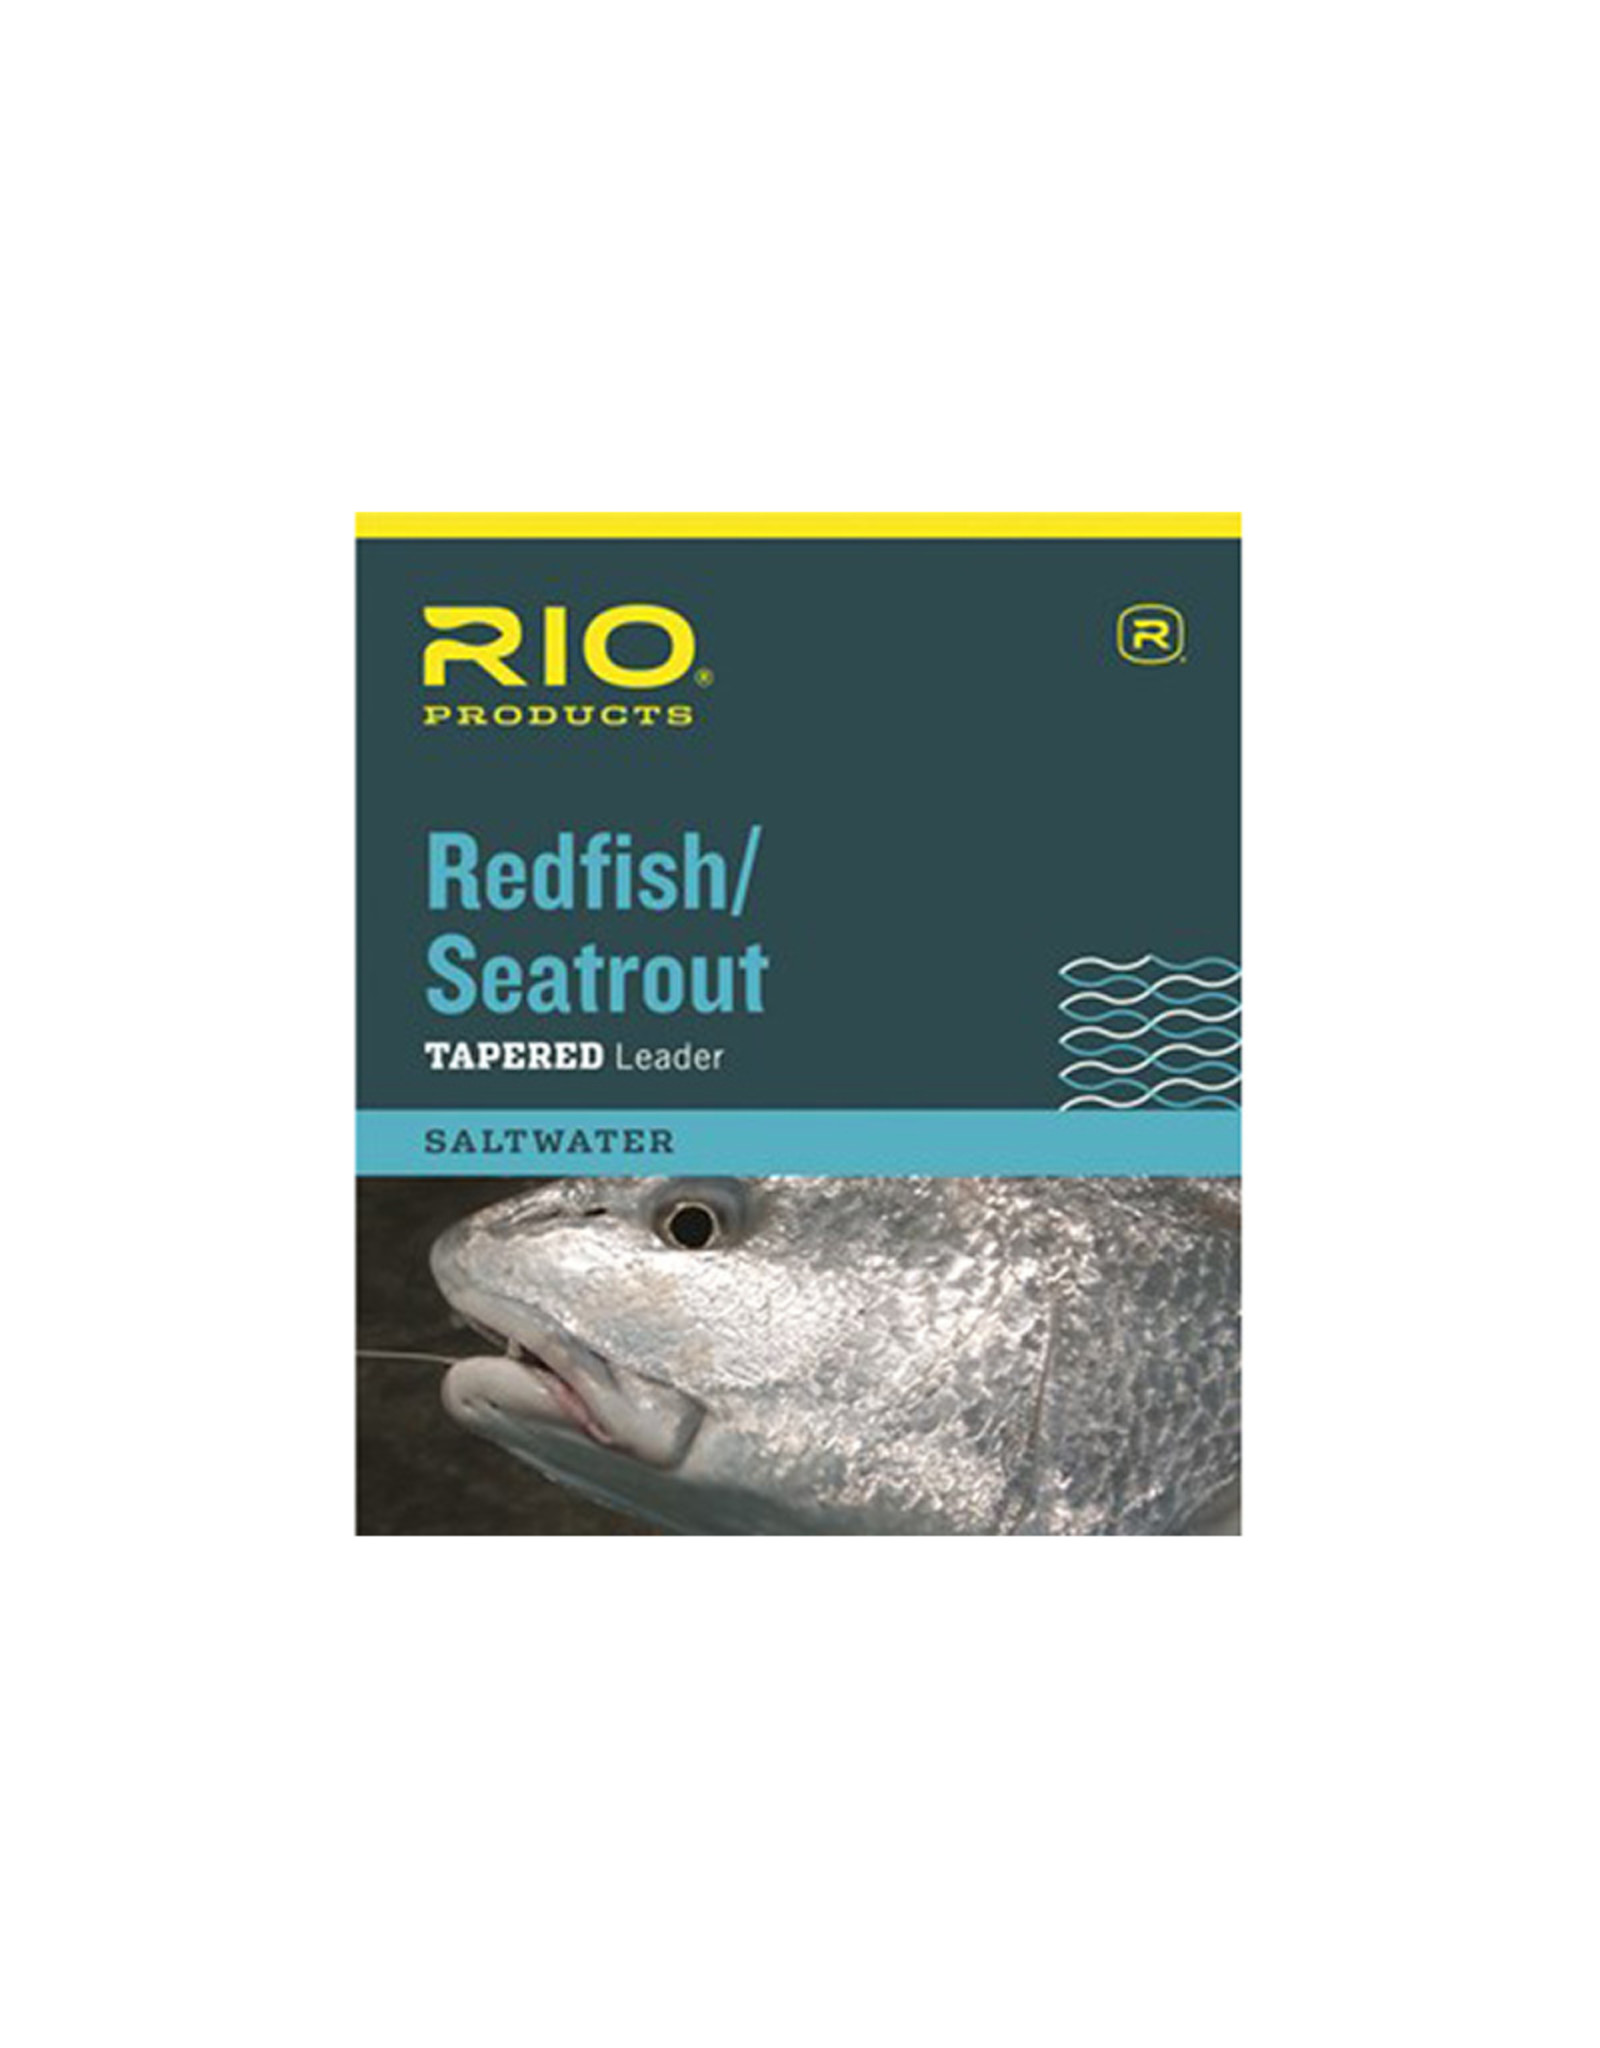 RIO Products Redfish/Seatrout 9ft Tapered Leader